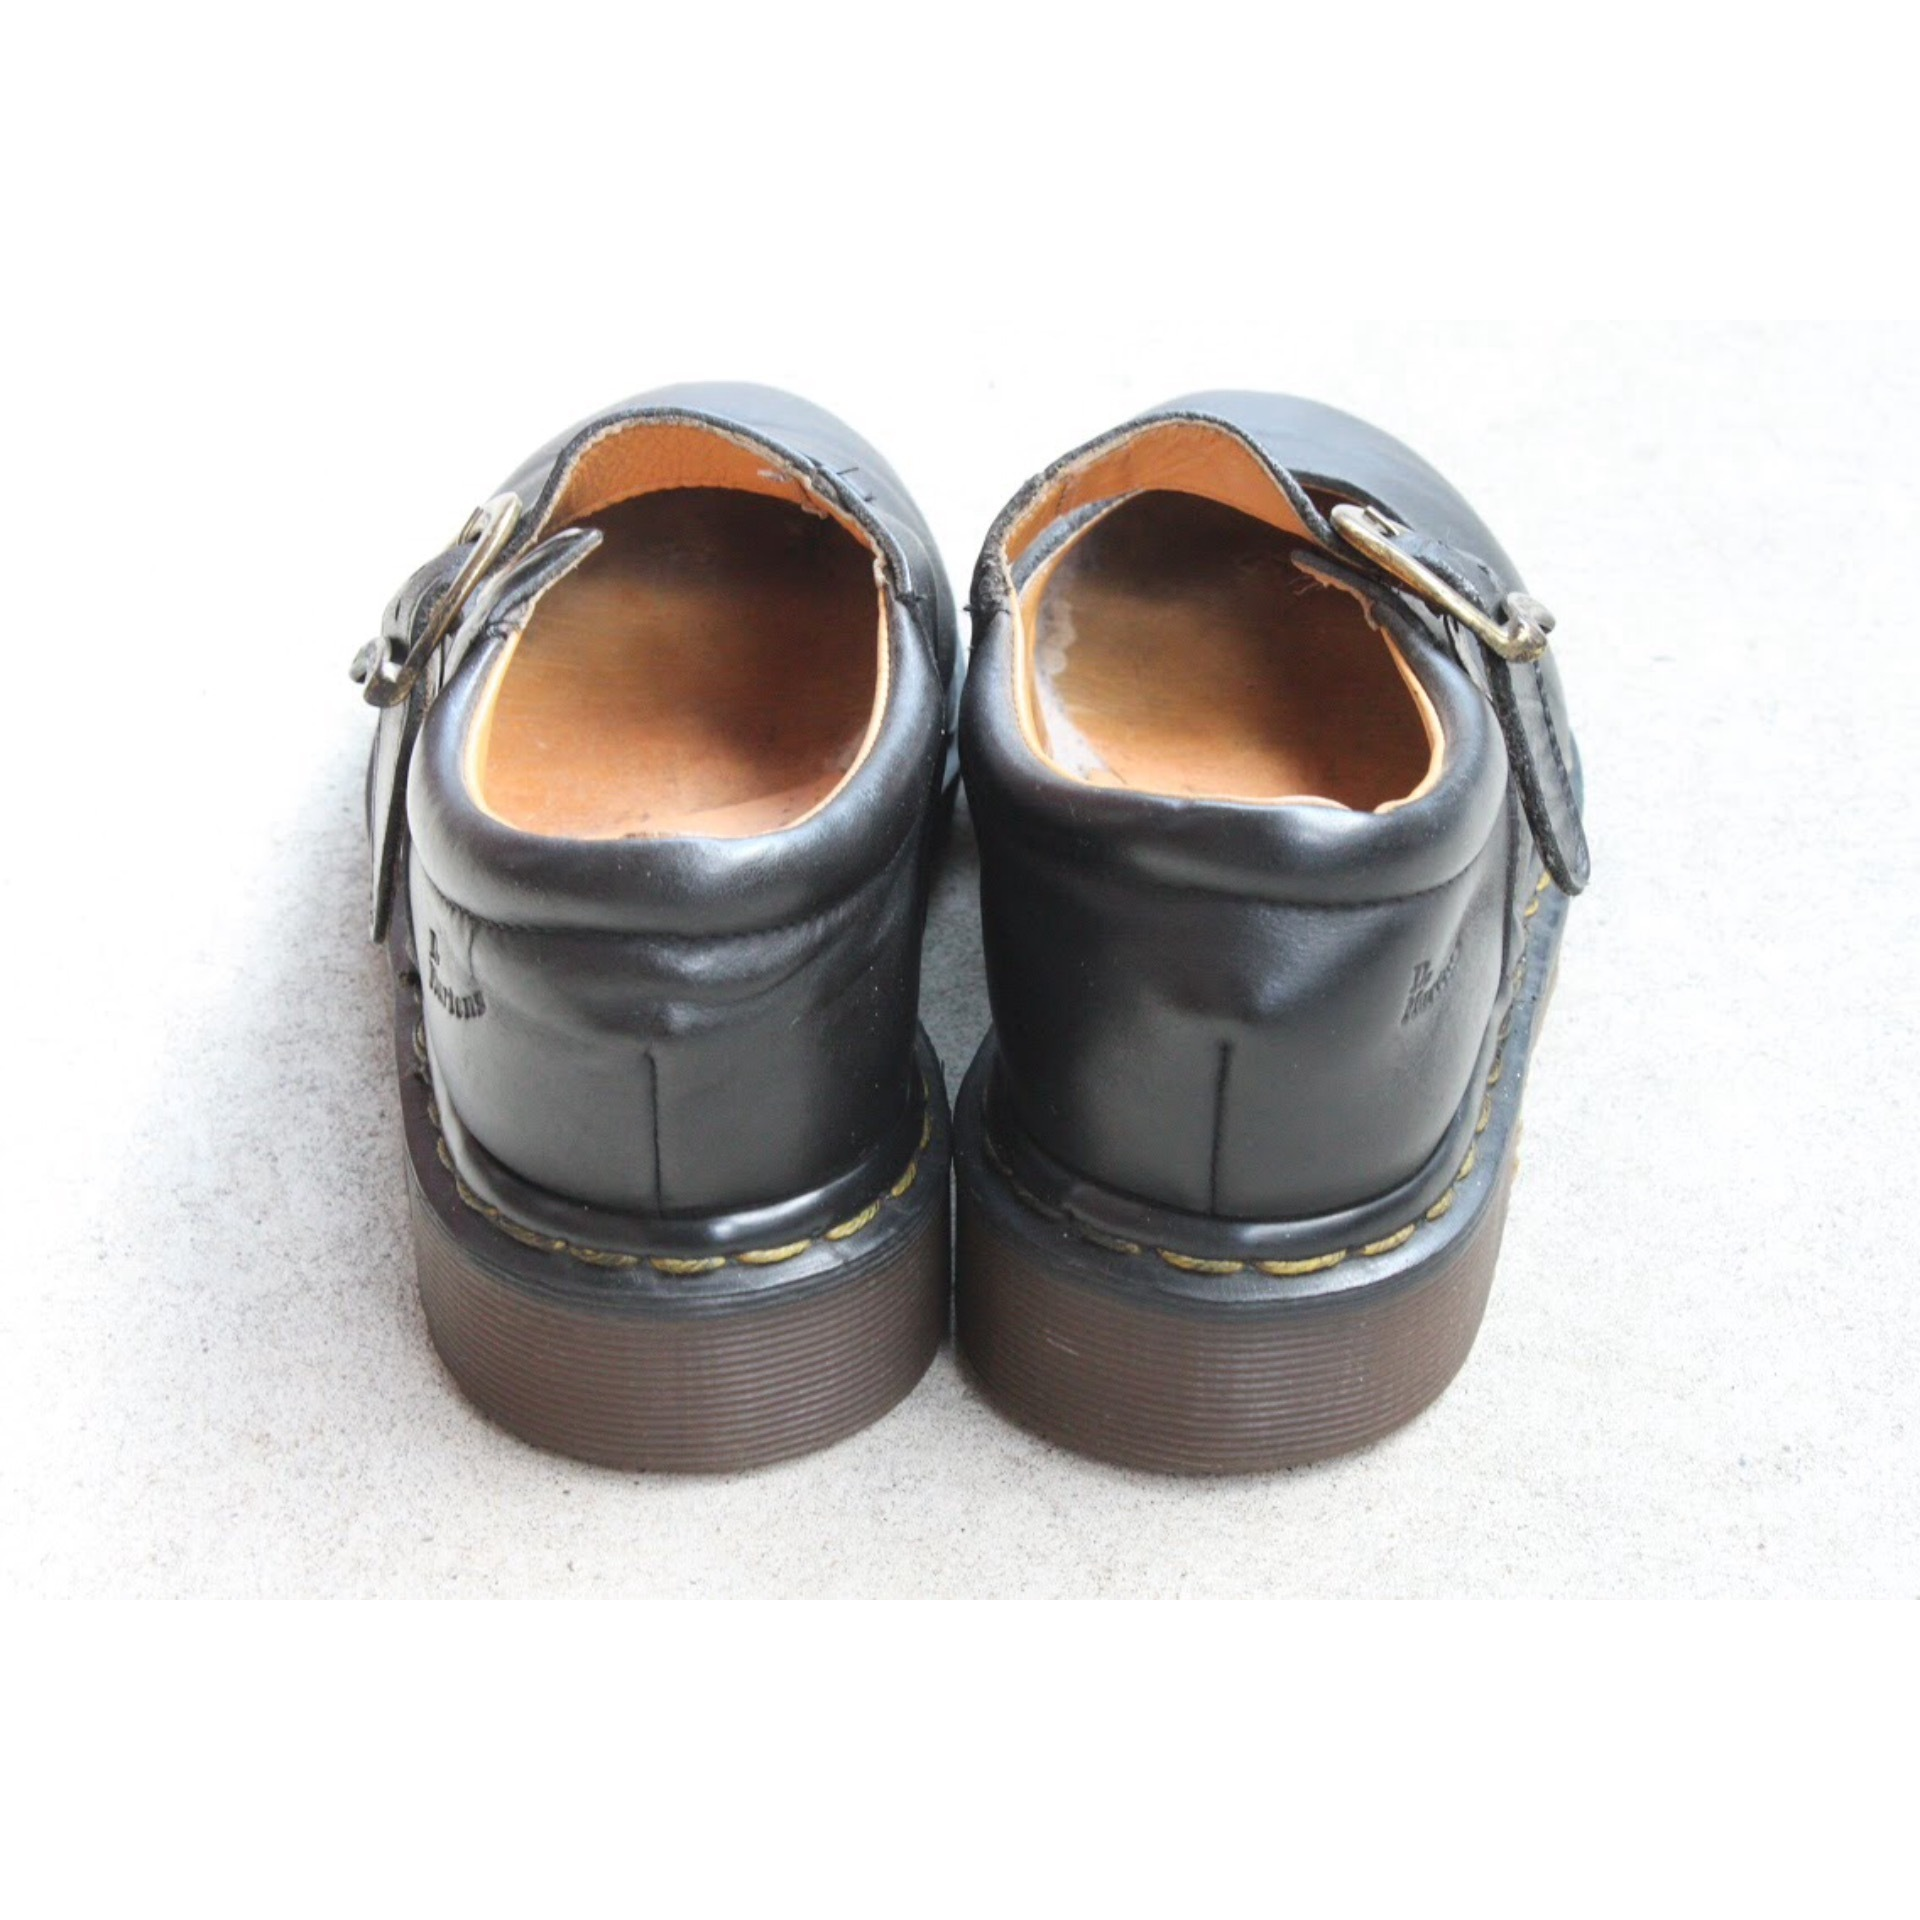 Dr. Martins strap shoes Made in England Size 4